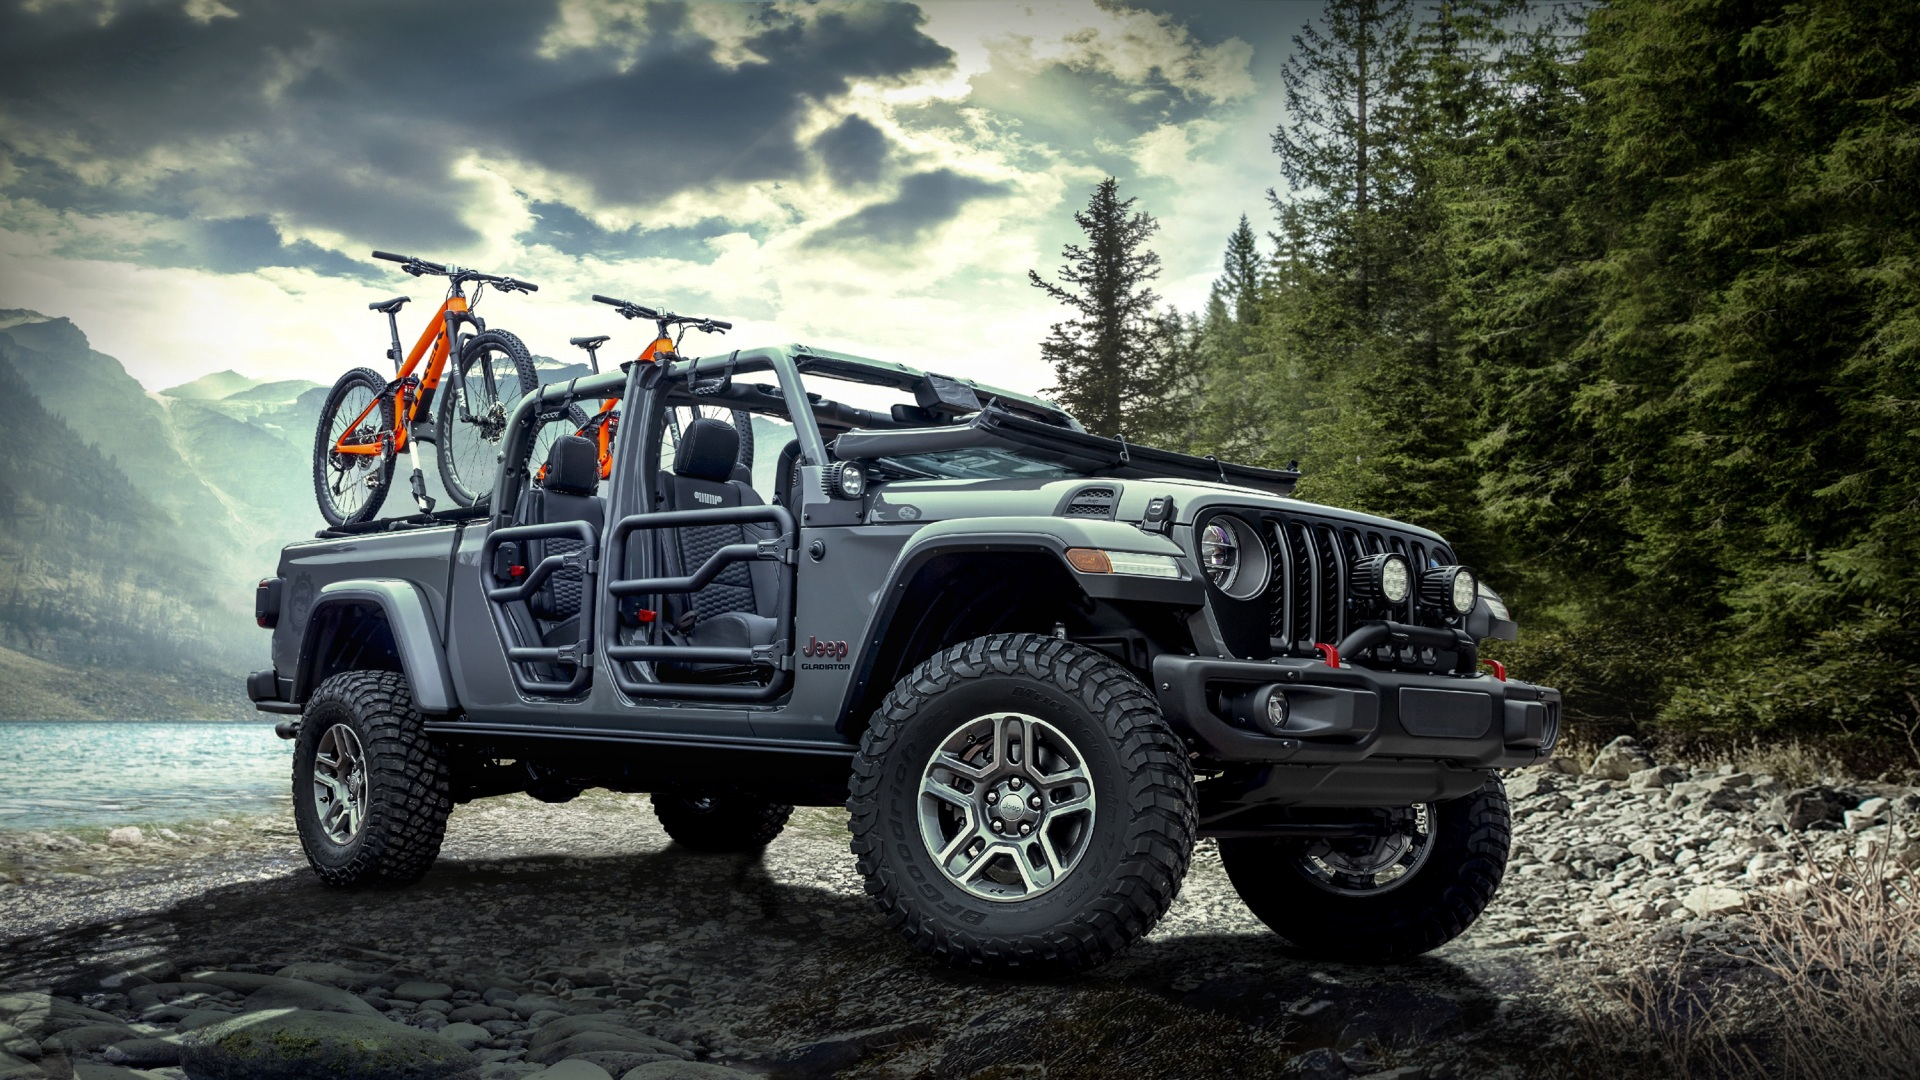 Photo 2020 Jeep Gladiator Rubicon automobile 1920x1080 1920x1080